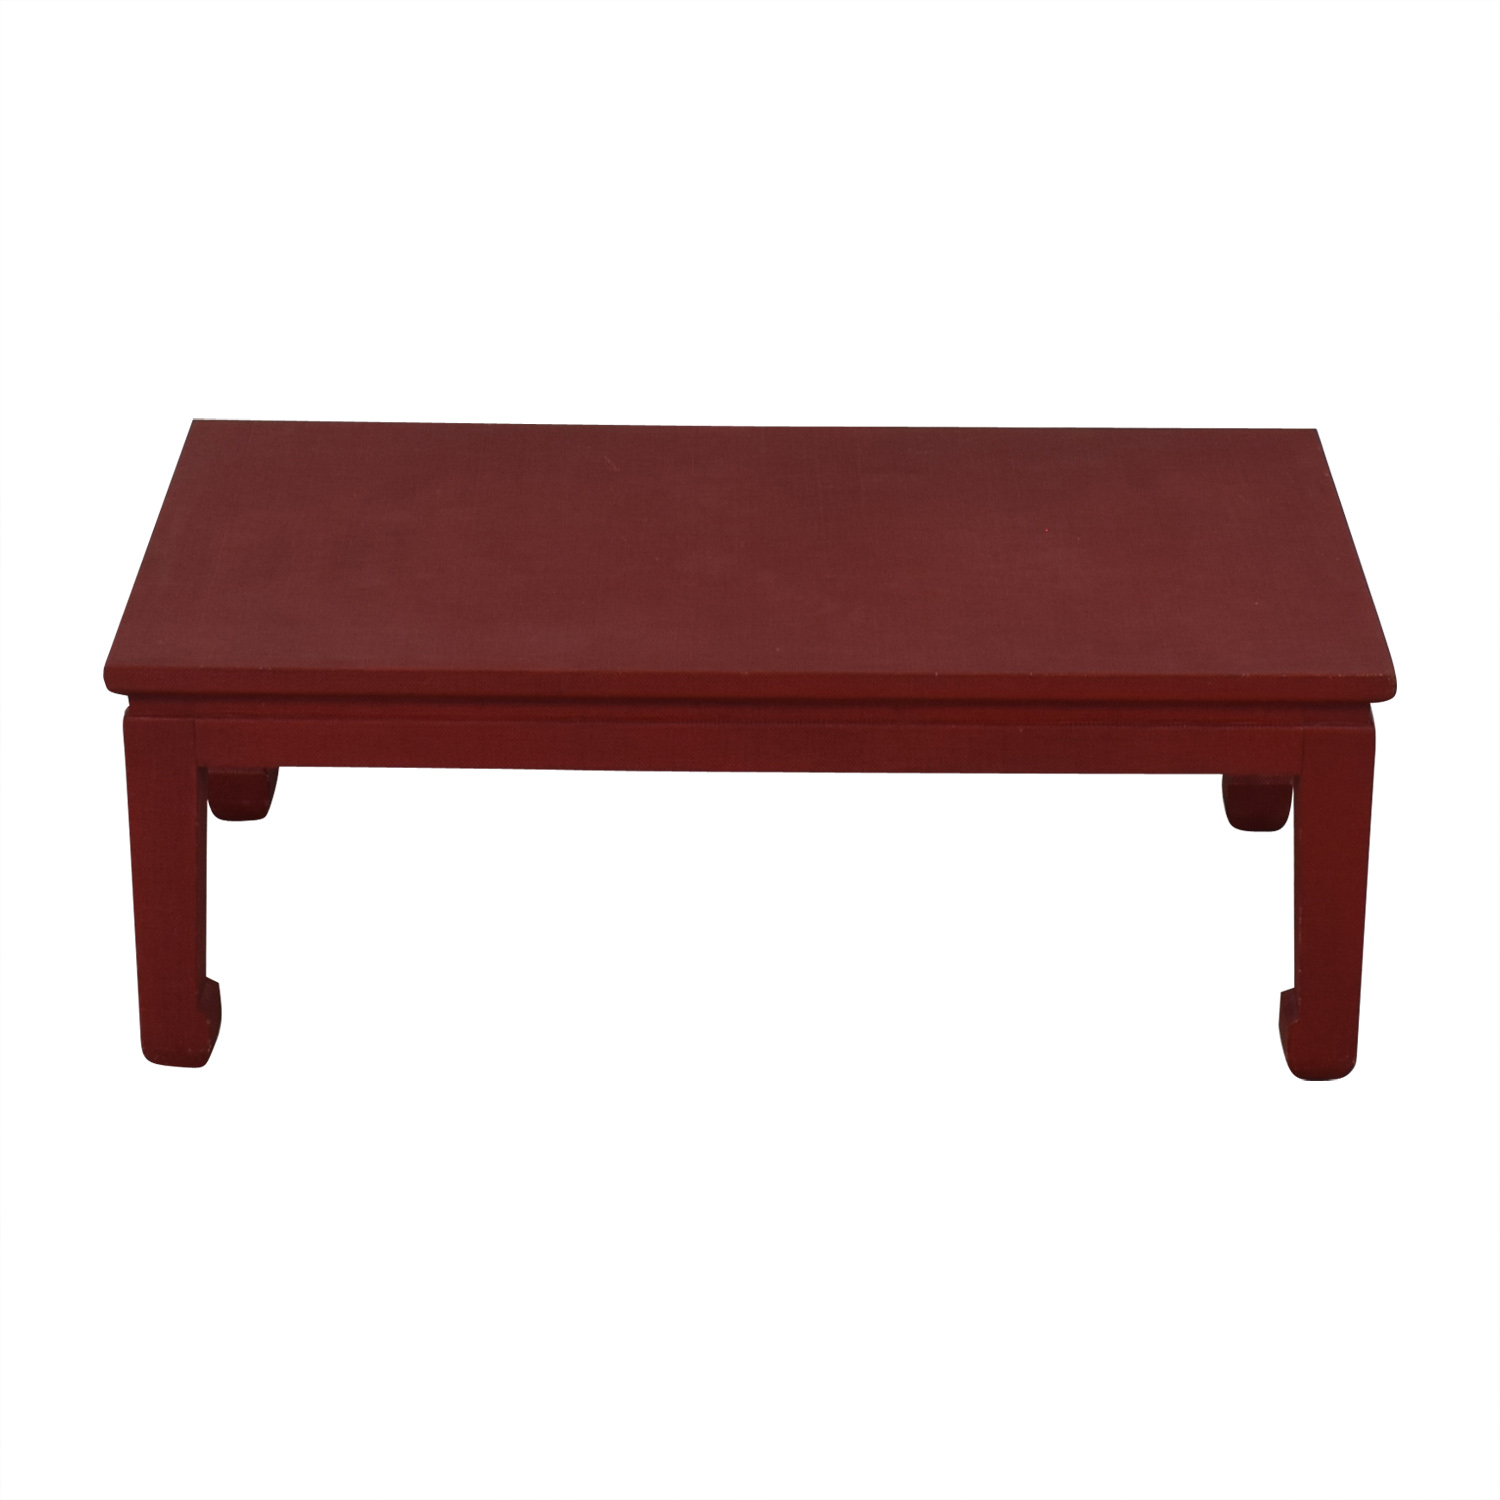 82% OFF   One Kings Lane One Kingu0027s Lane Asian Inspired Grass Cloth Coffee  Table In Red / Tables